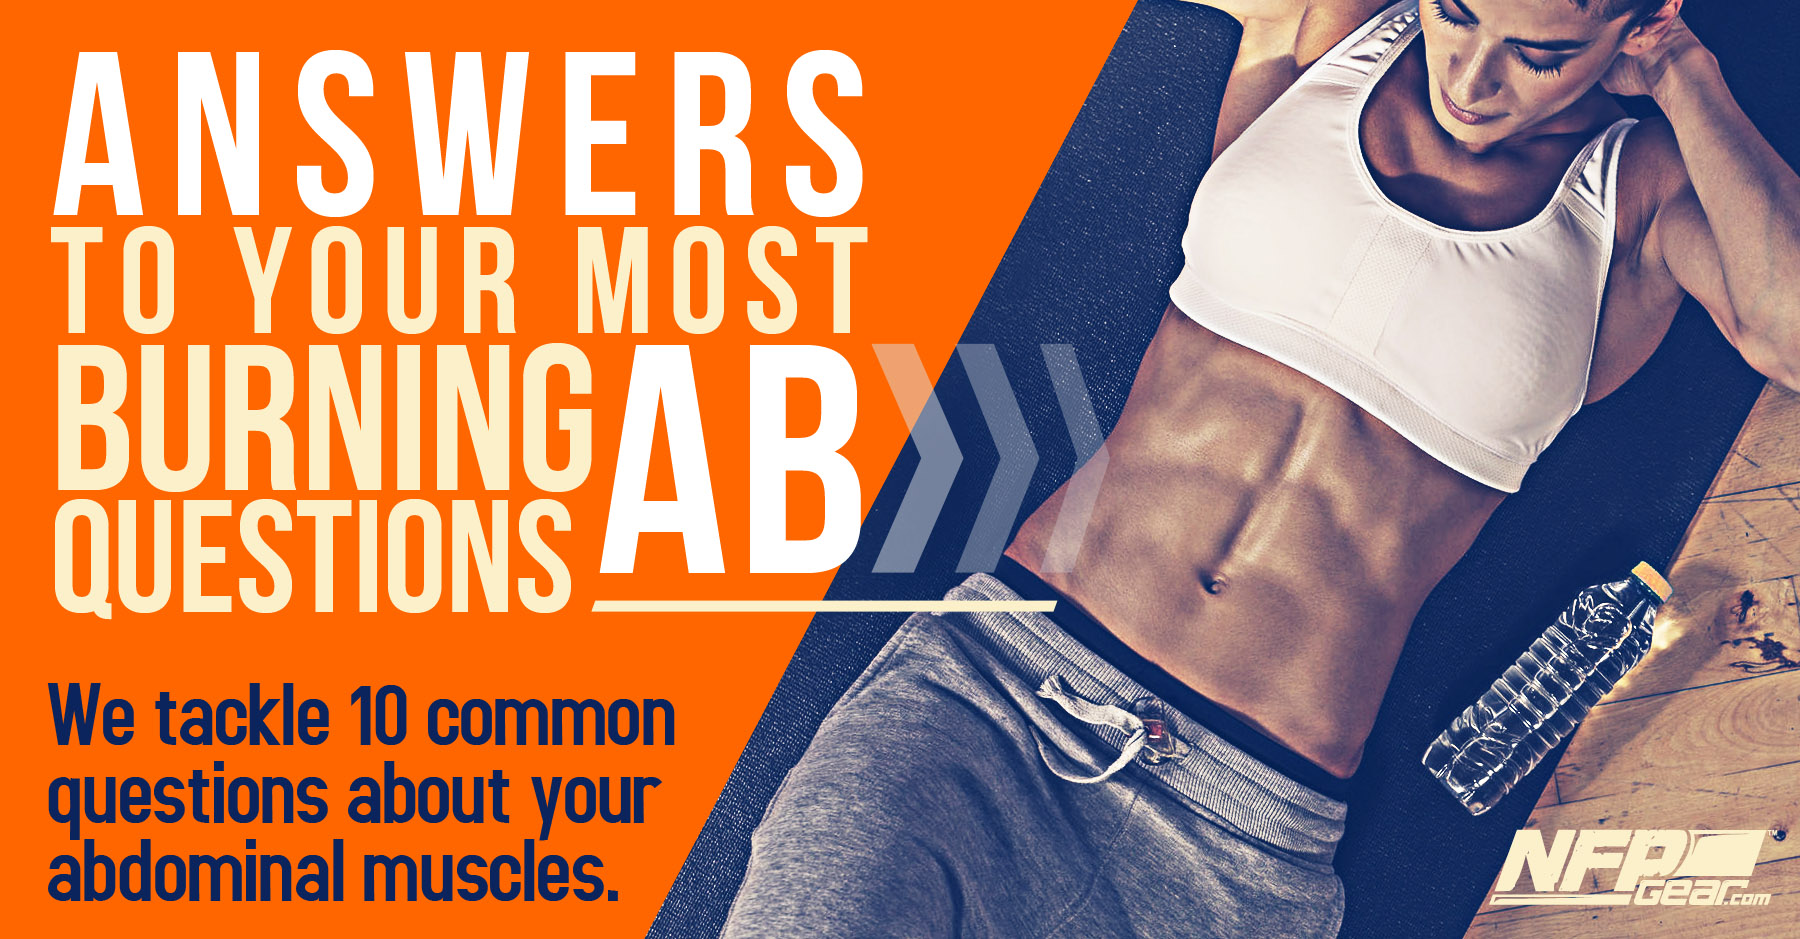 Answers To Your Most Burning Ab Questions Nfp Gear